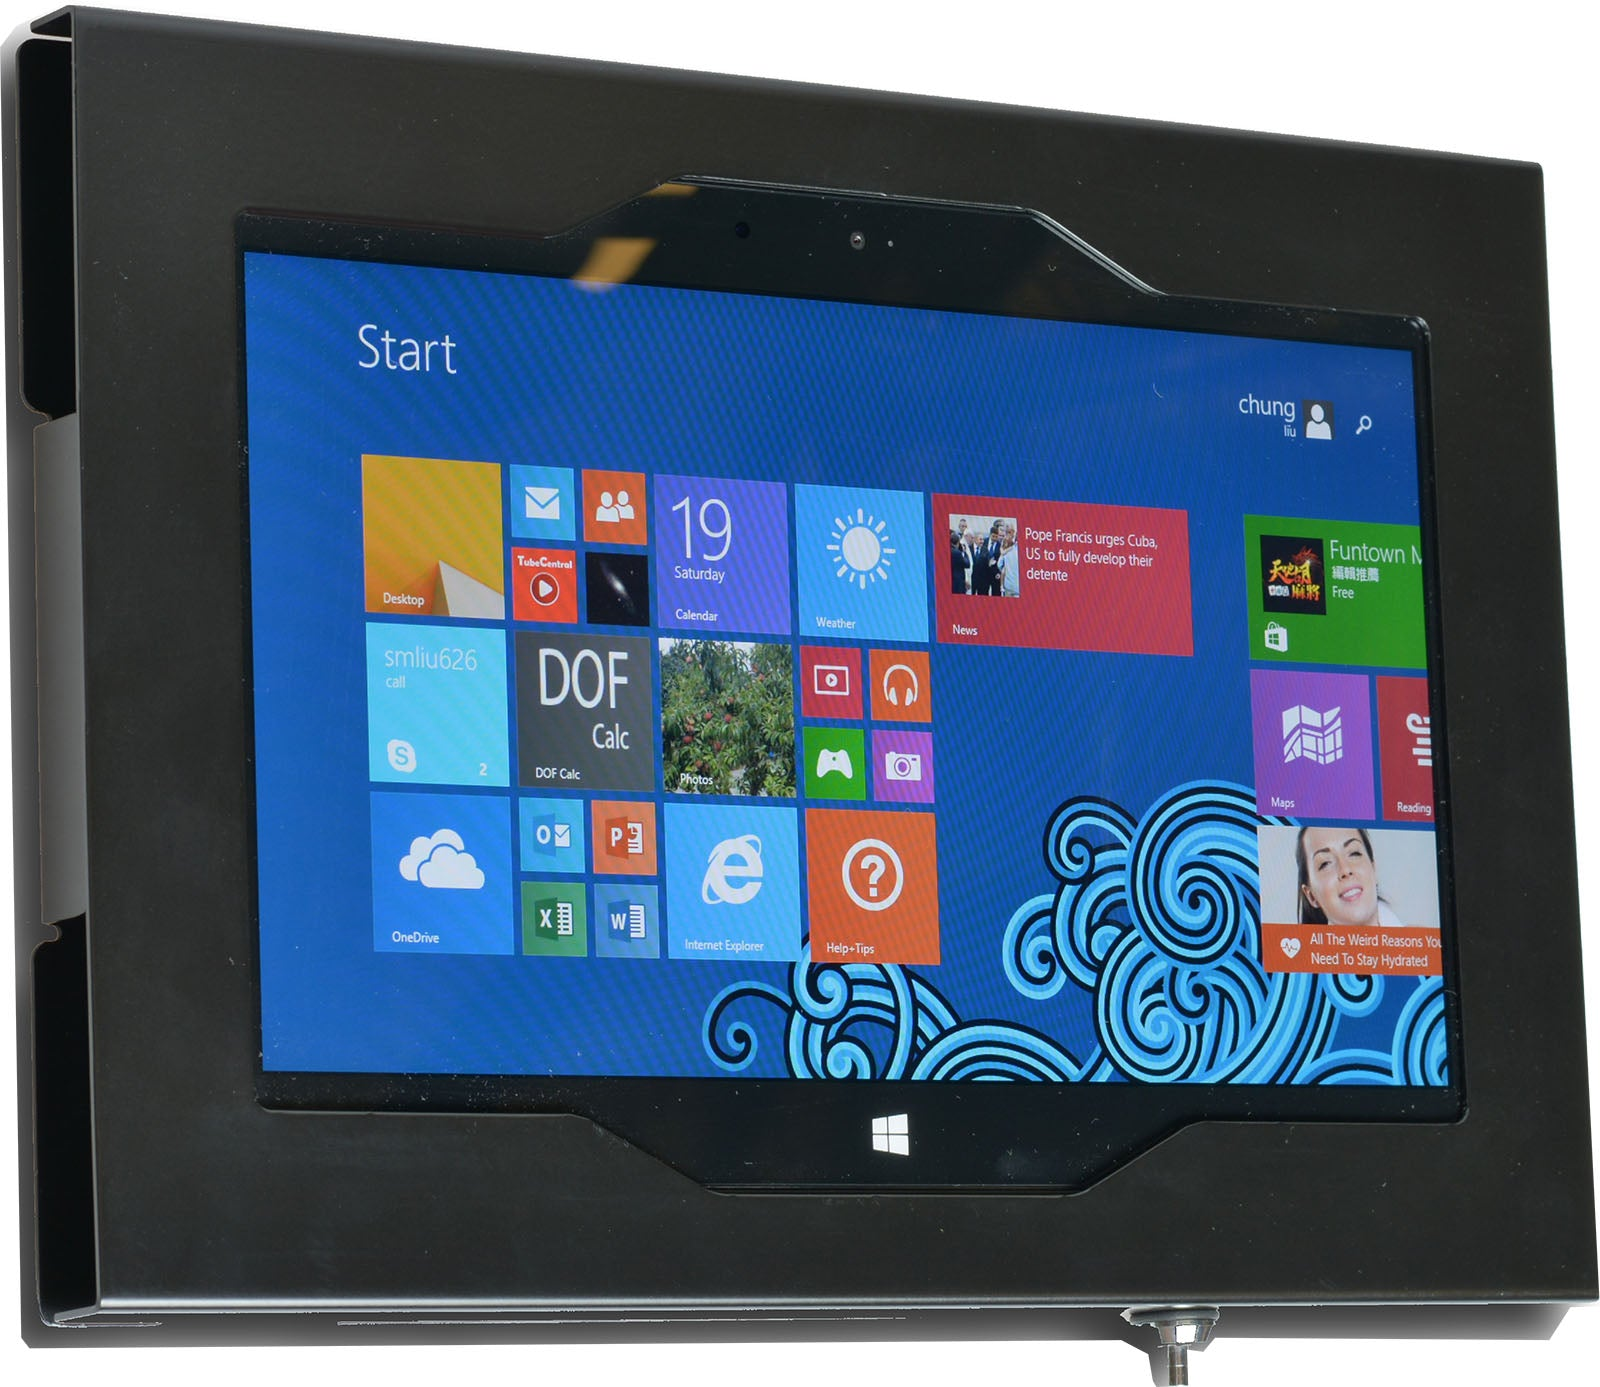 MS Surface RT, Surface 2, Surface Pro 2, Surface 3, Surface Go Security Wall Mount Metal Enclosure VESA Ready